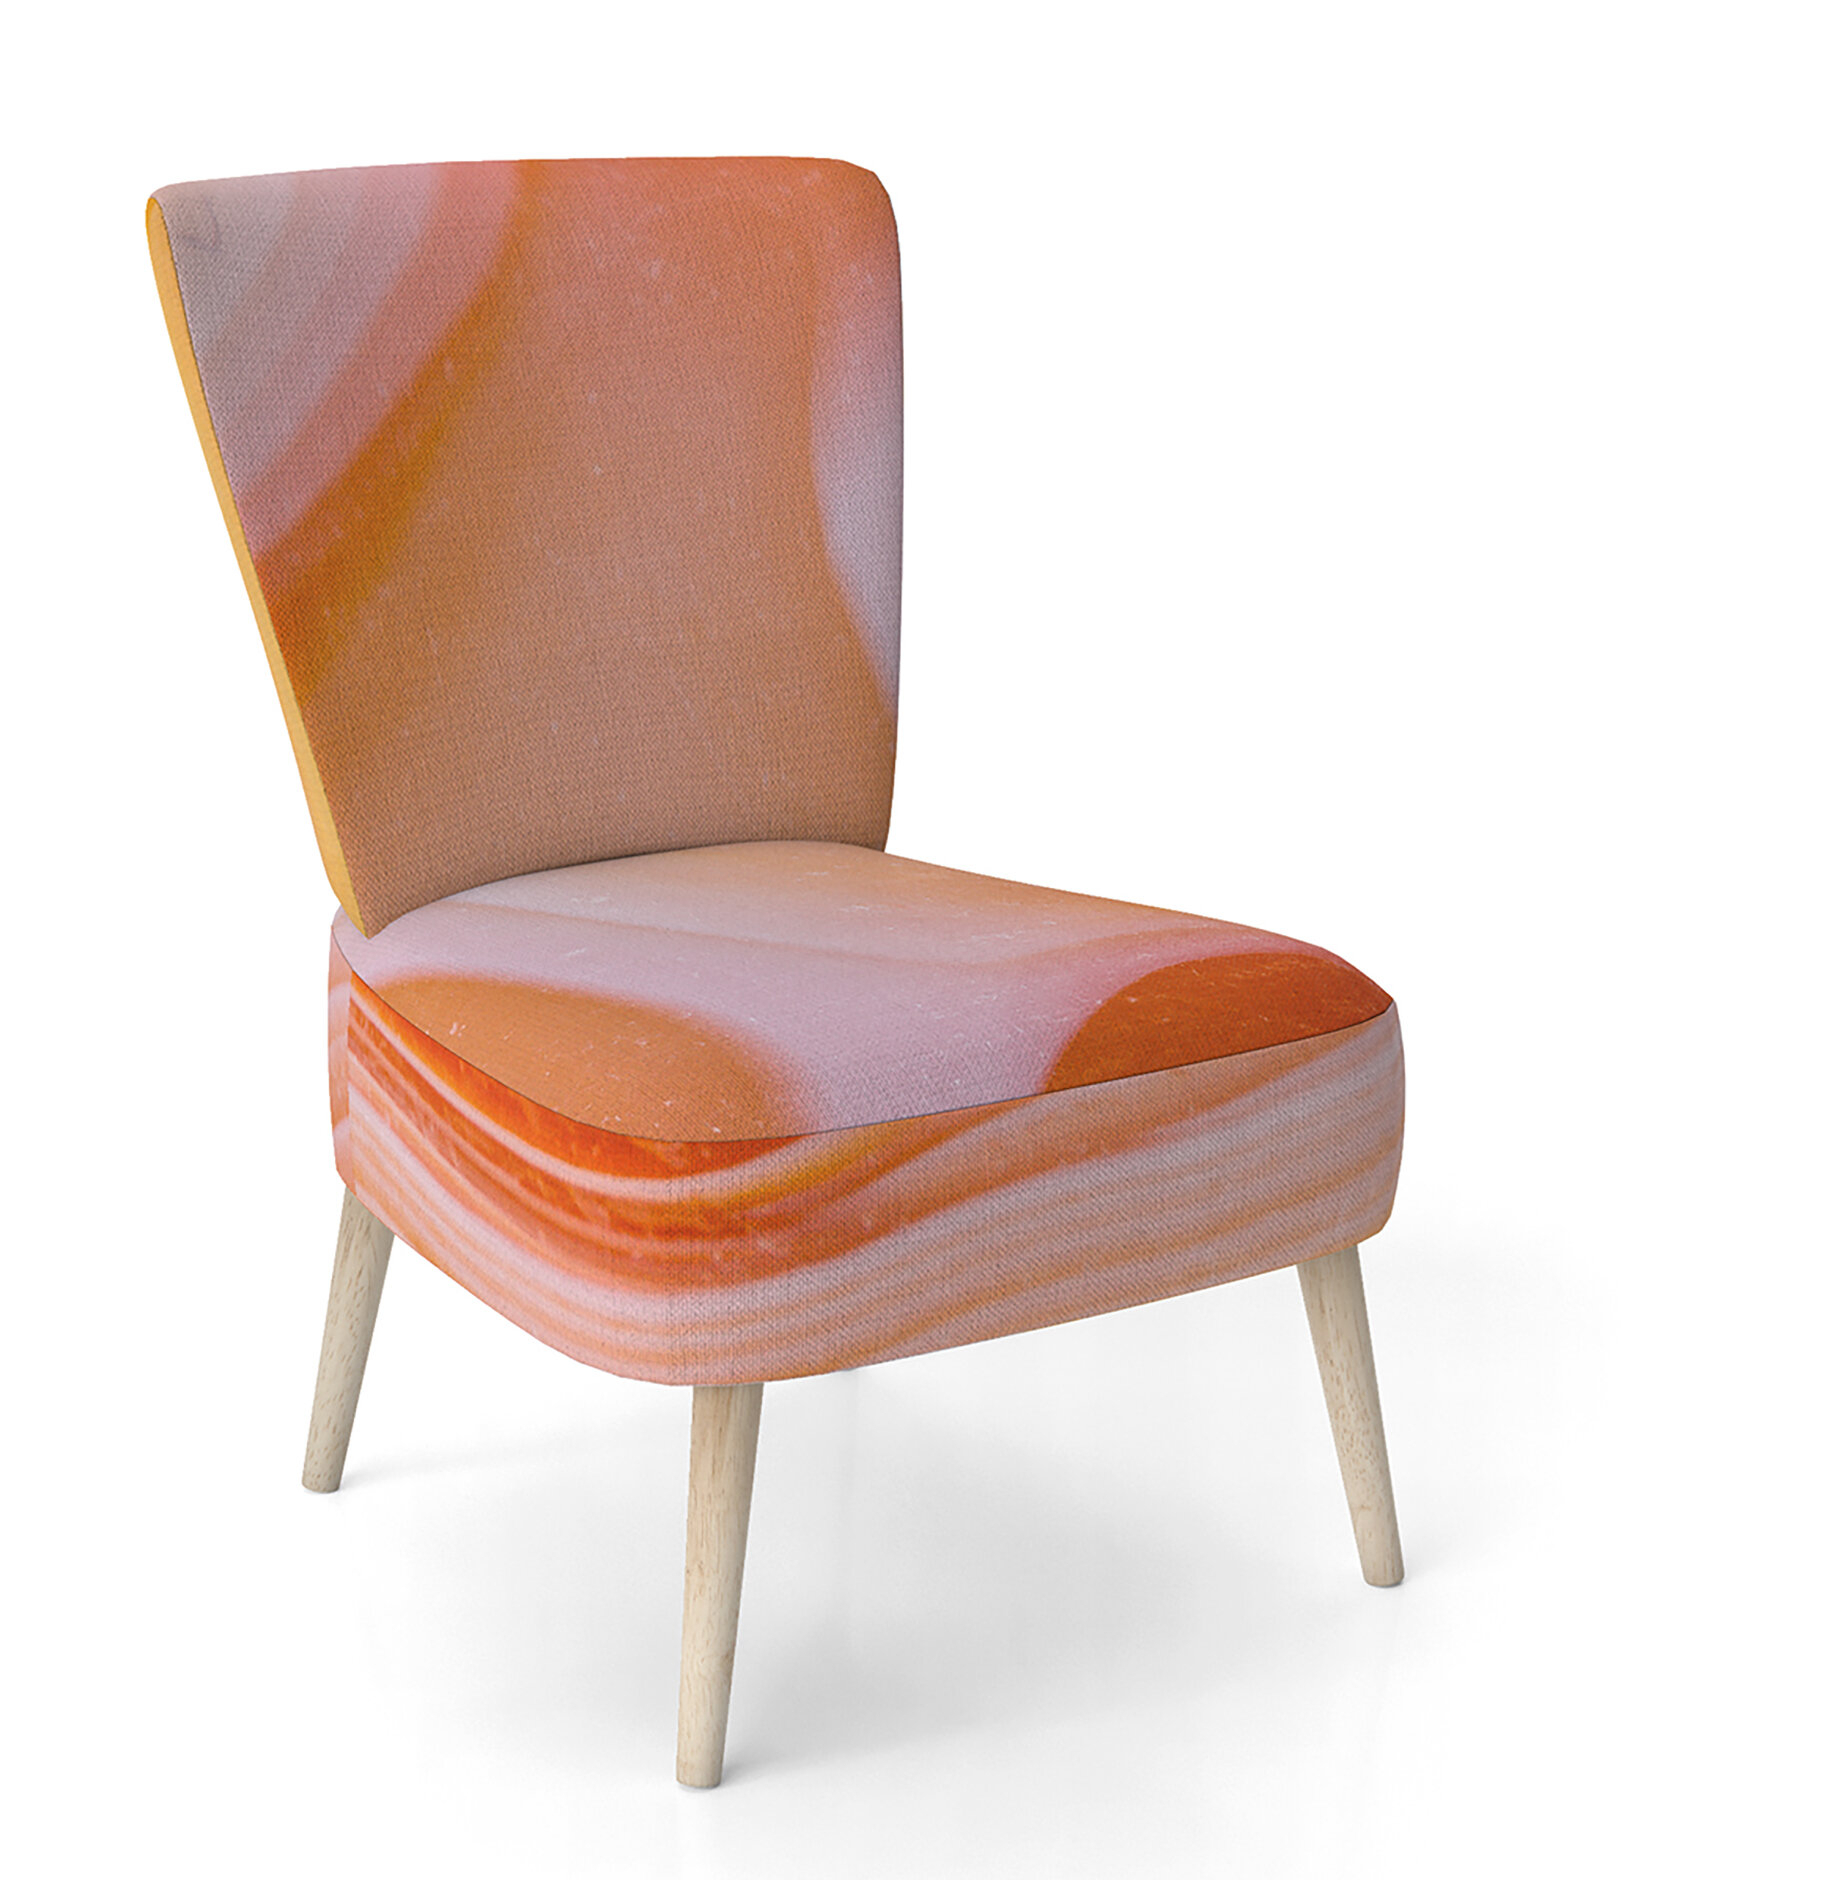 Commercial Use Orange Small Accent Chairs You'Ll Love In Inside Artressia Barrel Chairs (View 12 of 15)